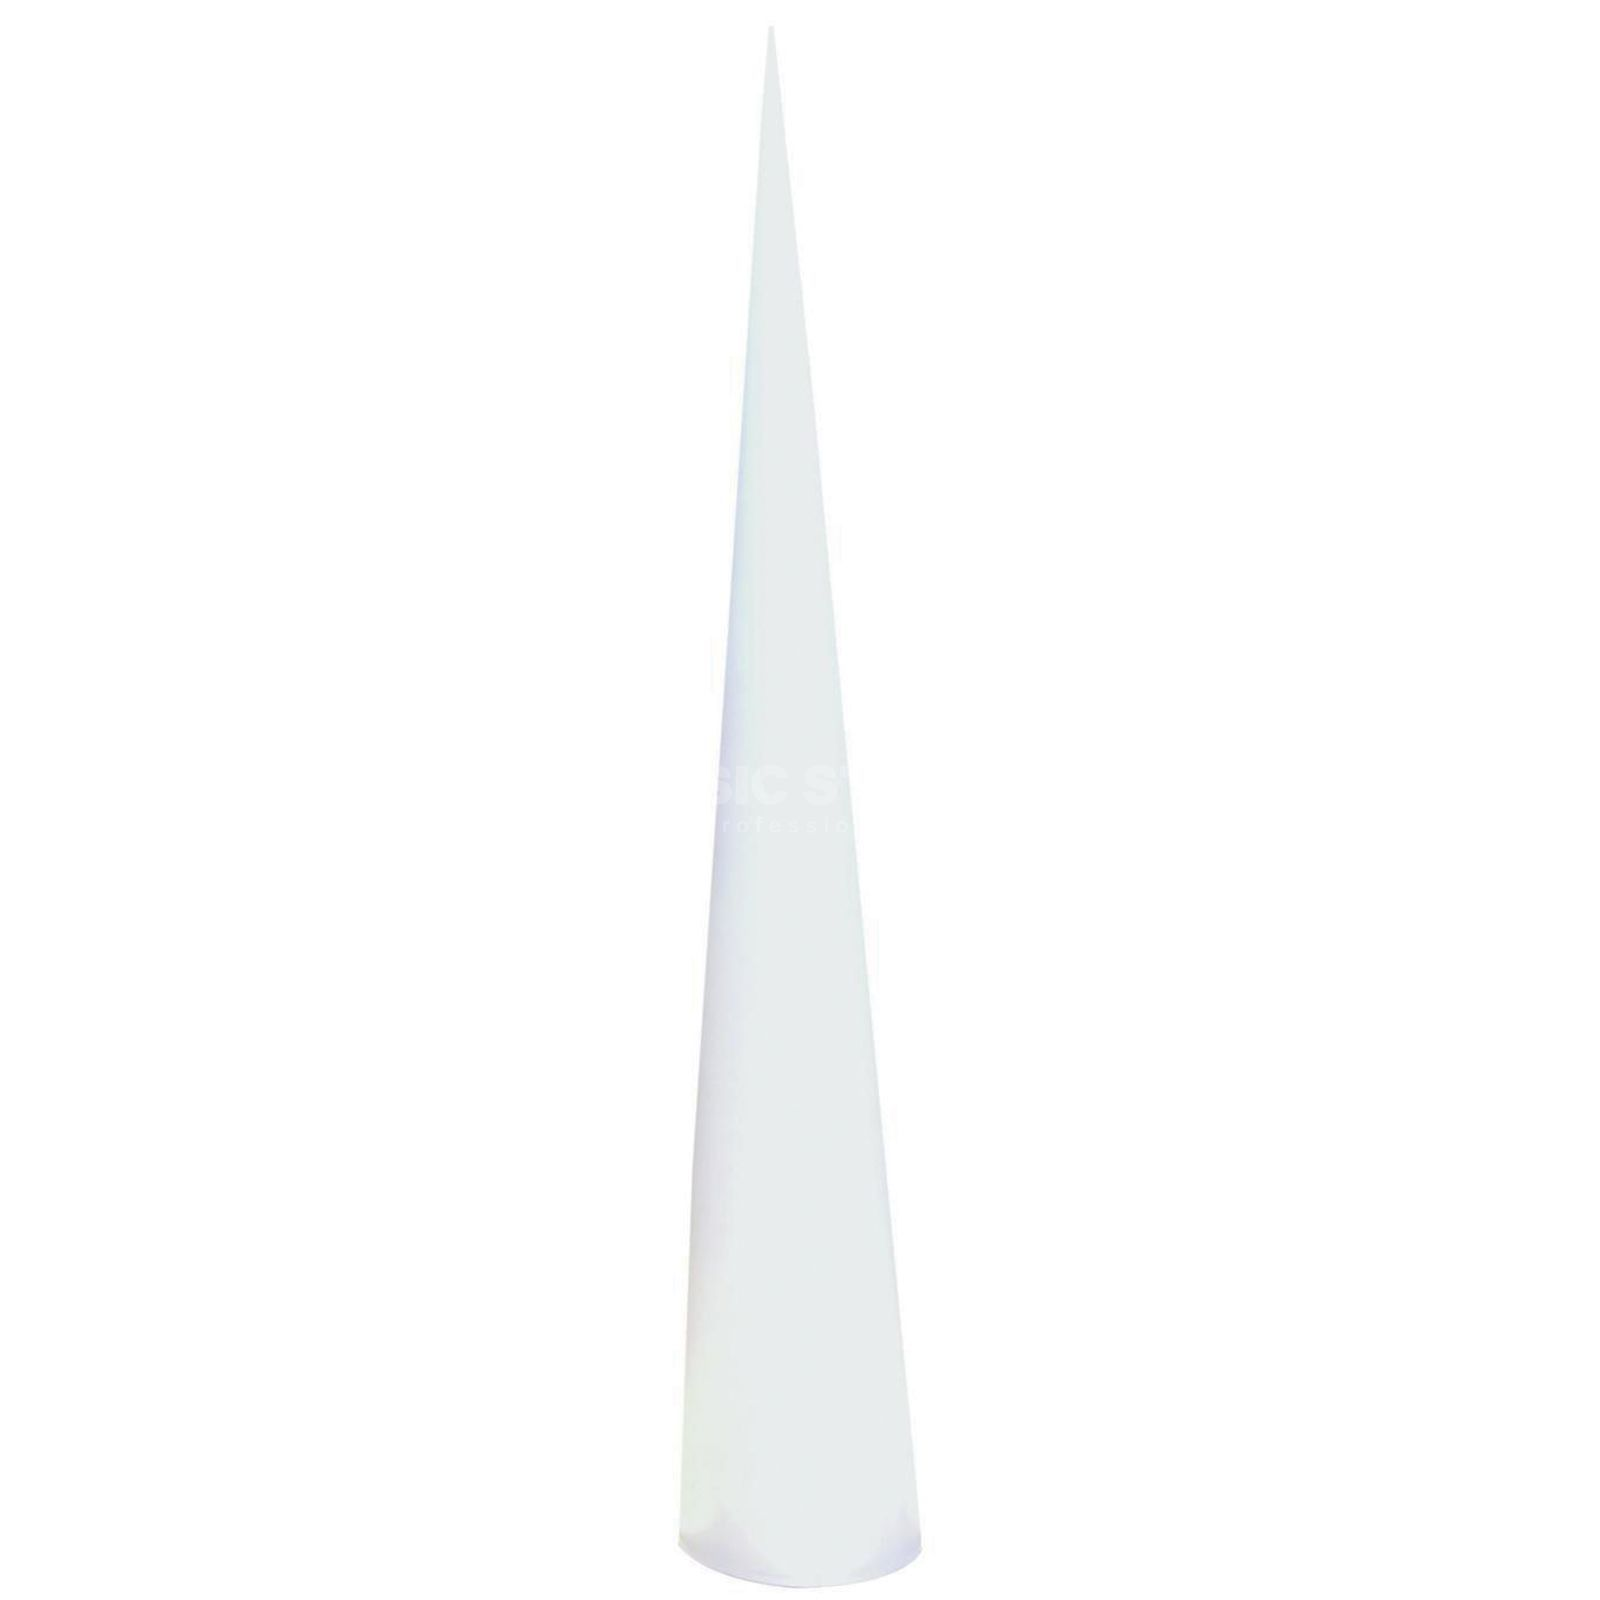 Eurolite Replacement Cone 3m for AC-300 white Produktbillede